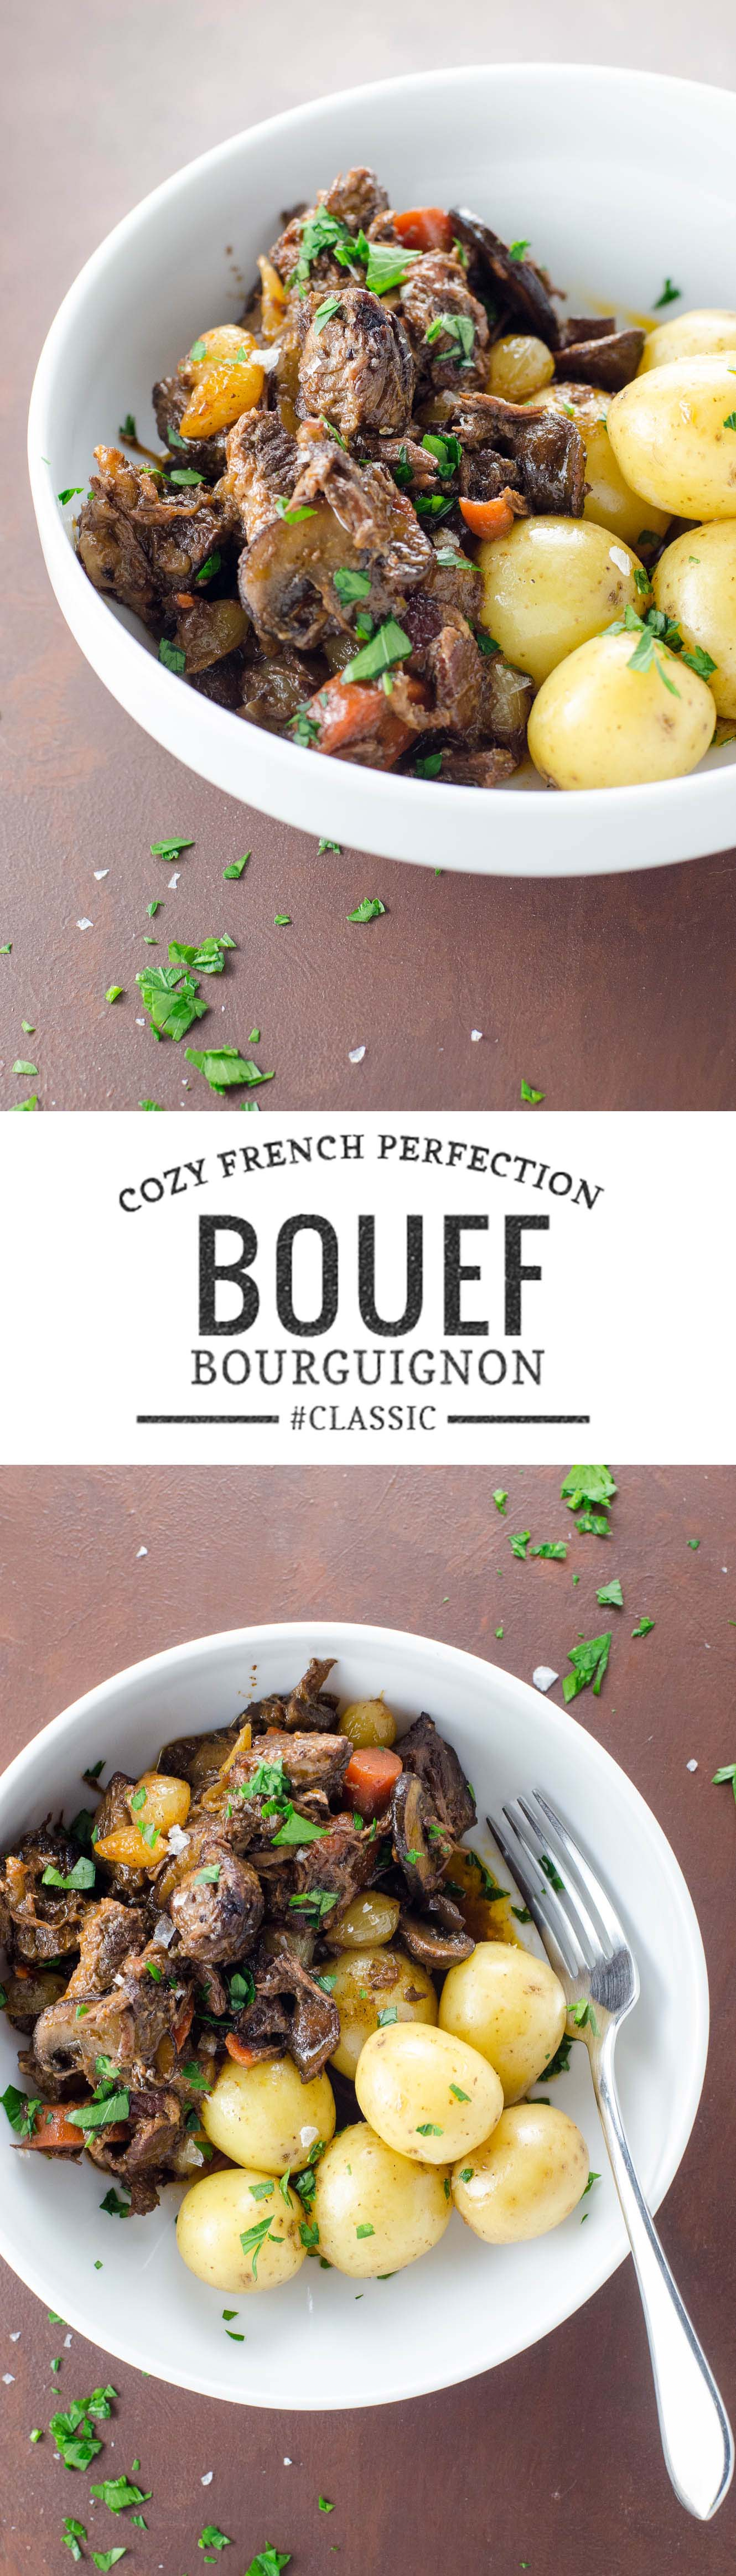 Boeuf Bourguignon, the classic French beef stew, is the ideal centerpiece for a cozy fall dinner party. It makes a great care package, too.